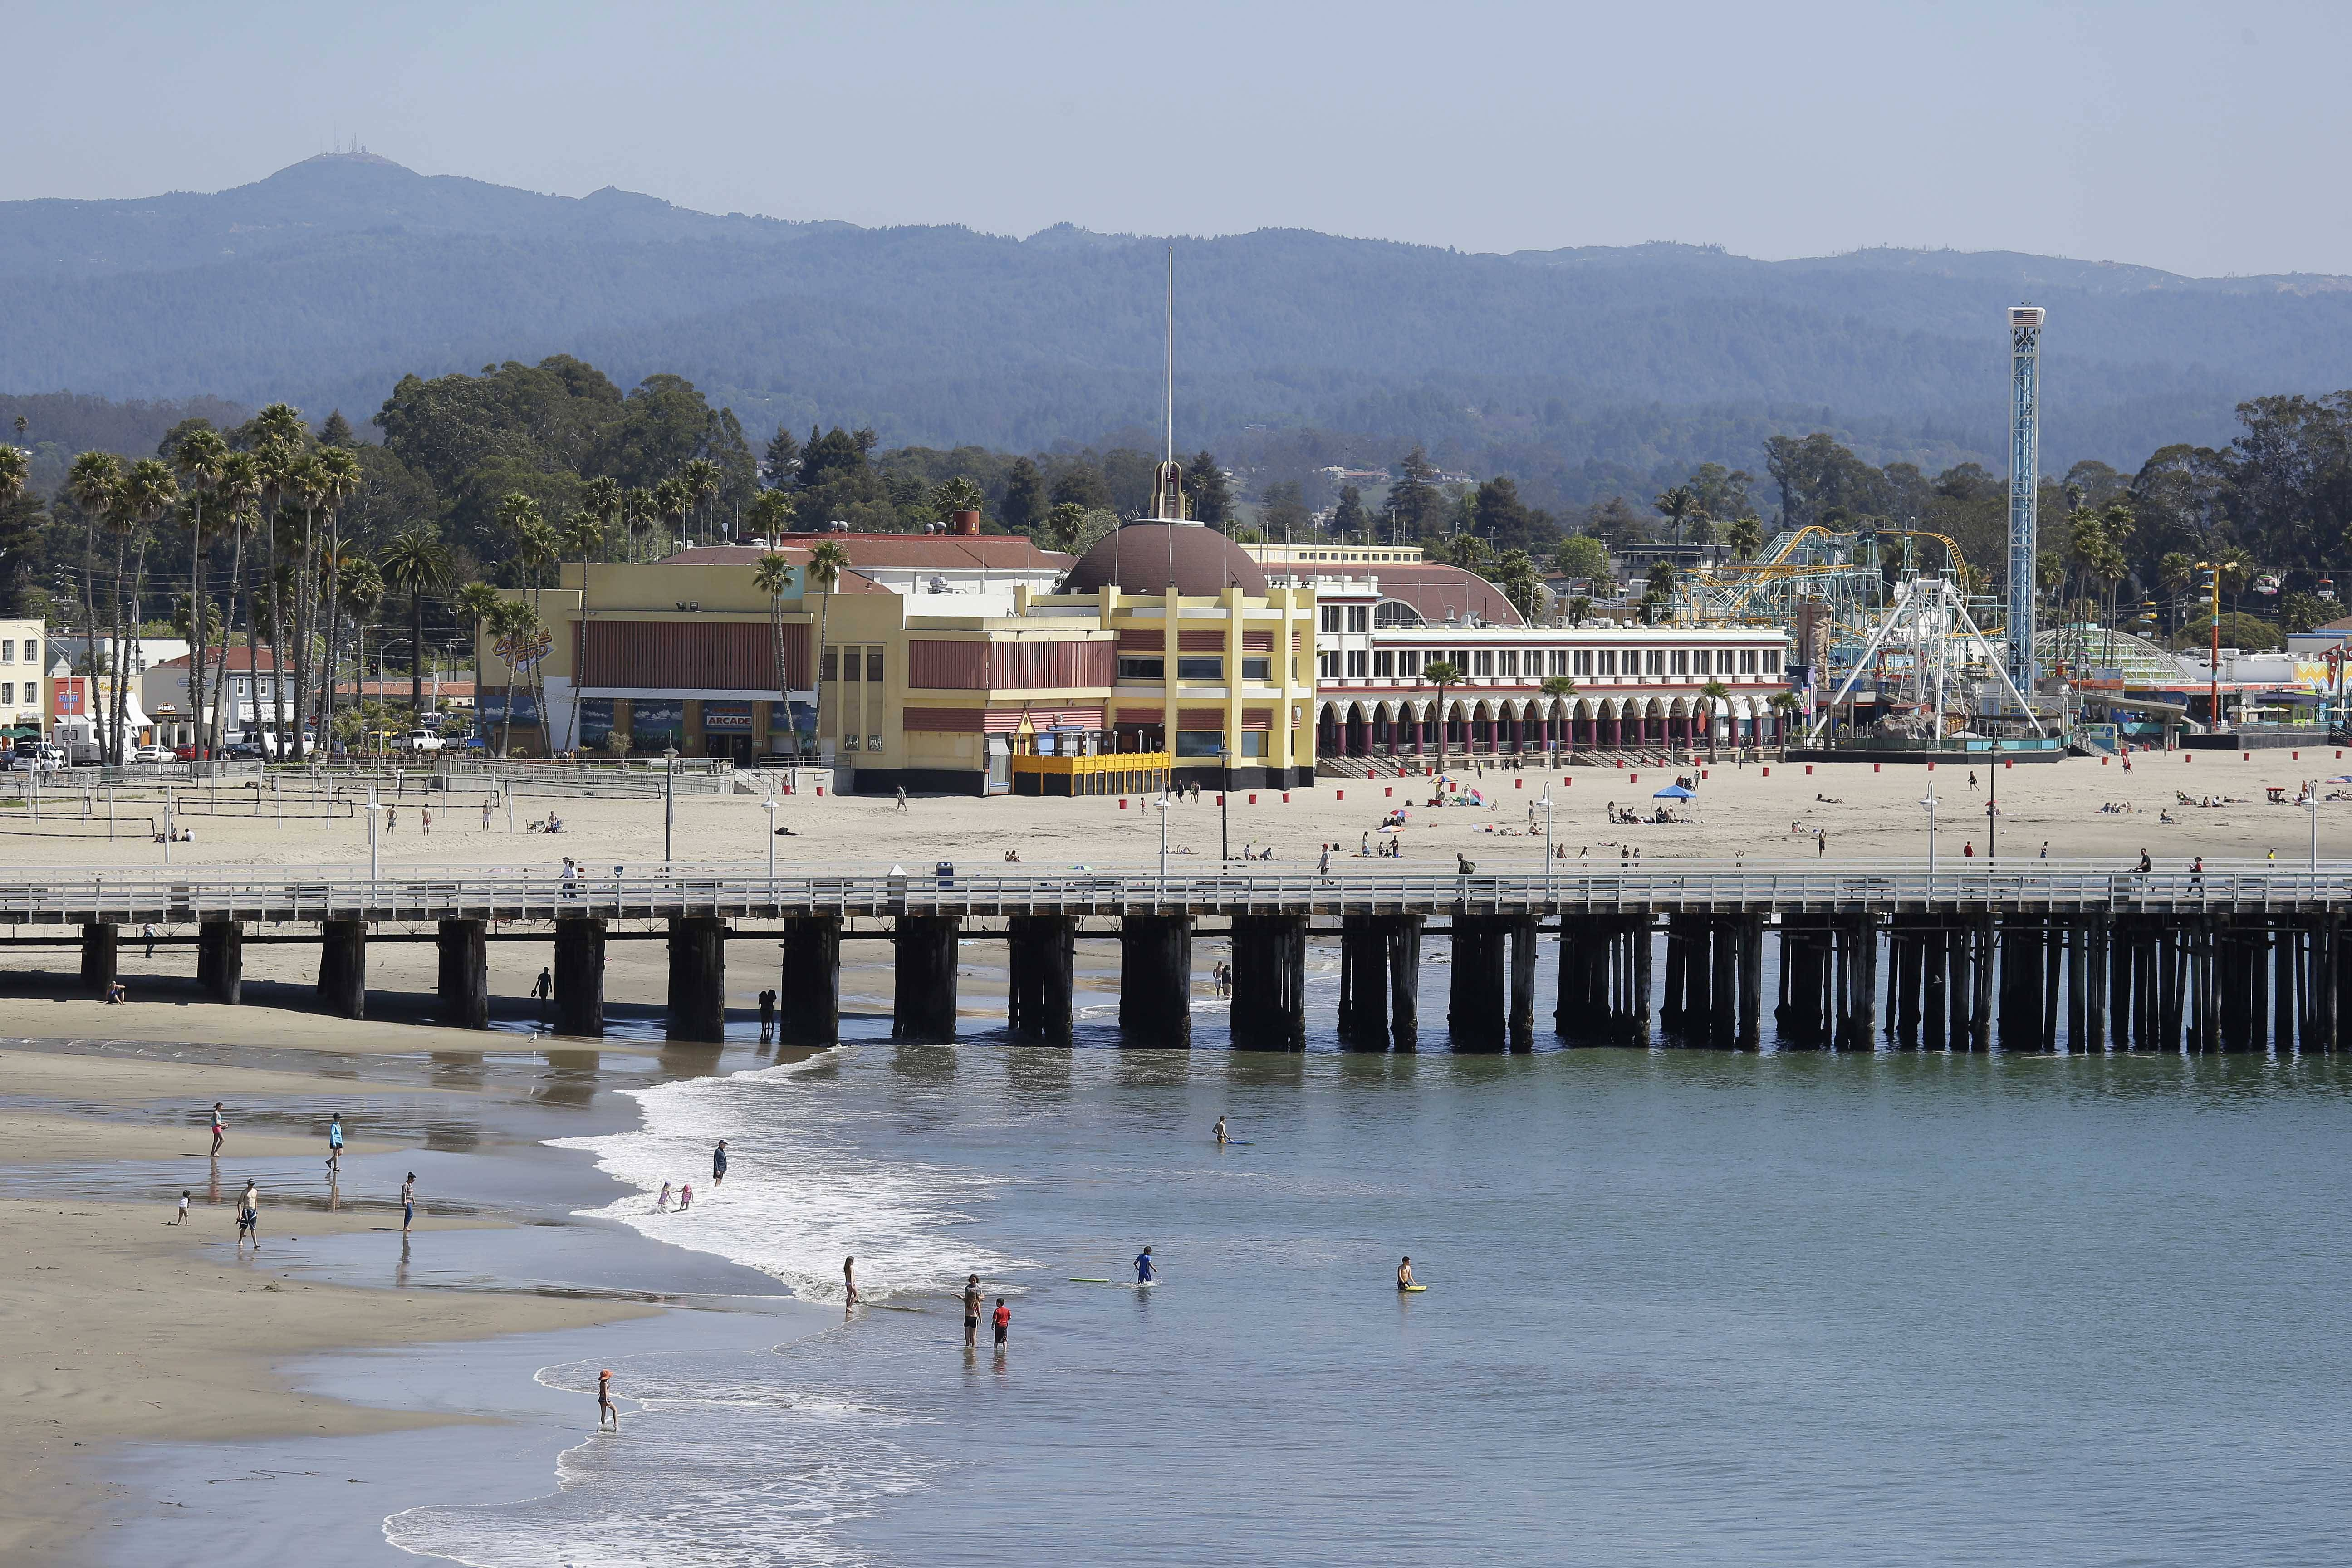 People enjoy the beach with the hundred-year-old wharf and Santa Cruz Beach Boardwalk in the background in Santa Cruz, Calif. Walking the beach, boardwalk and wharf are all free things one can enjoy when visiting Santa Cruz.